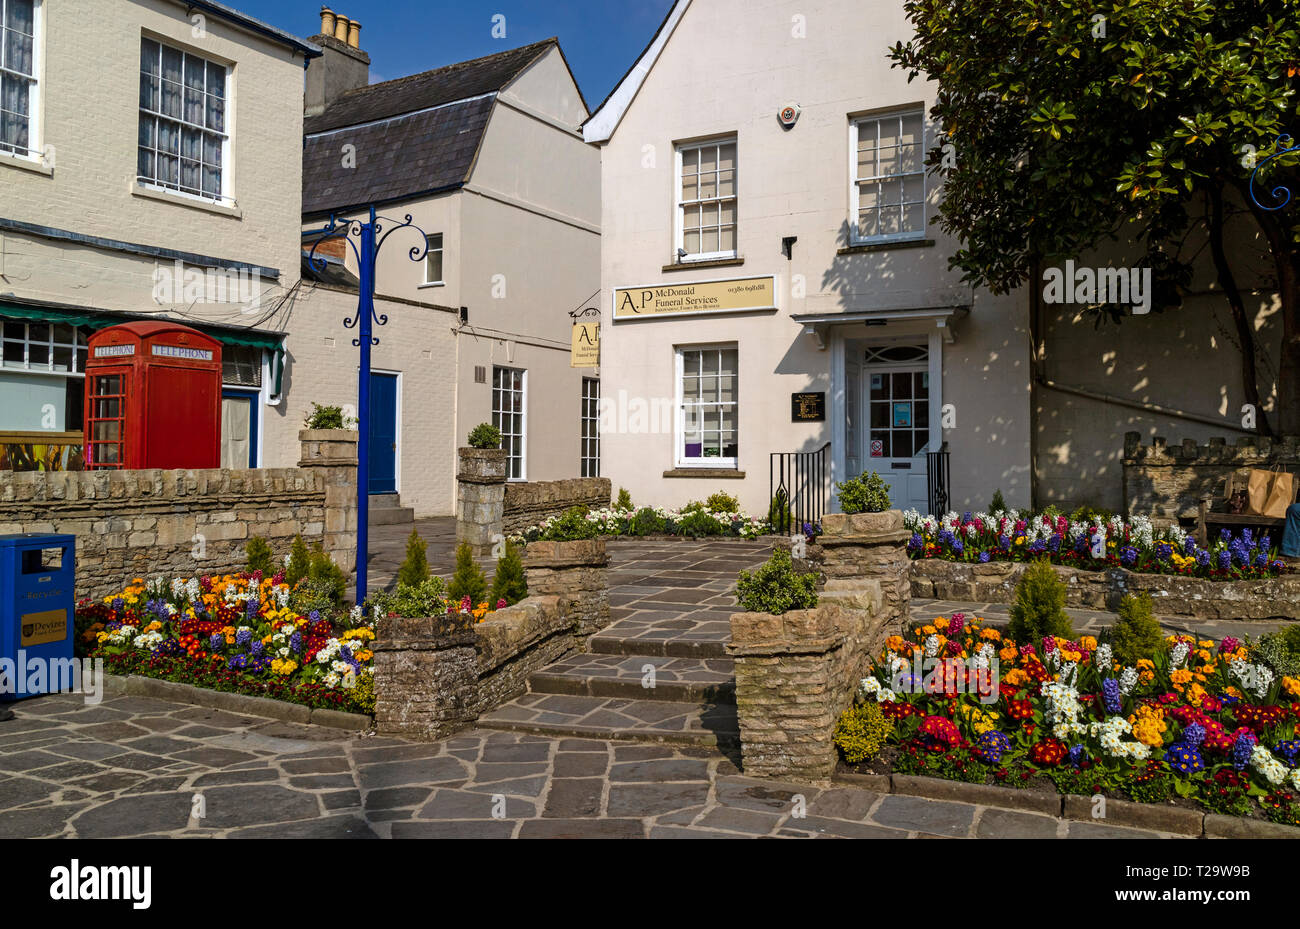 Devizes, Wiltshire, England, UK. March 2019. Funeral parlour with spring flowers the town centre. - Stock Image